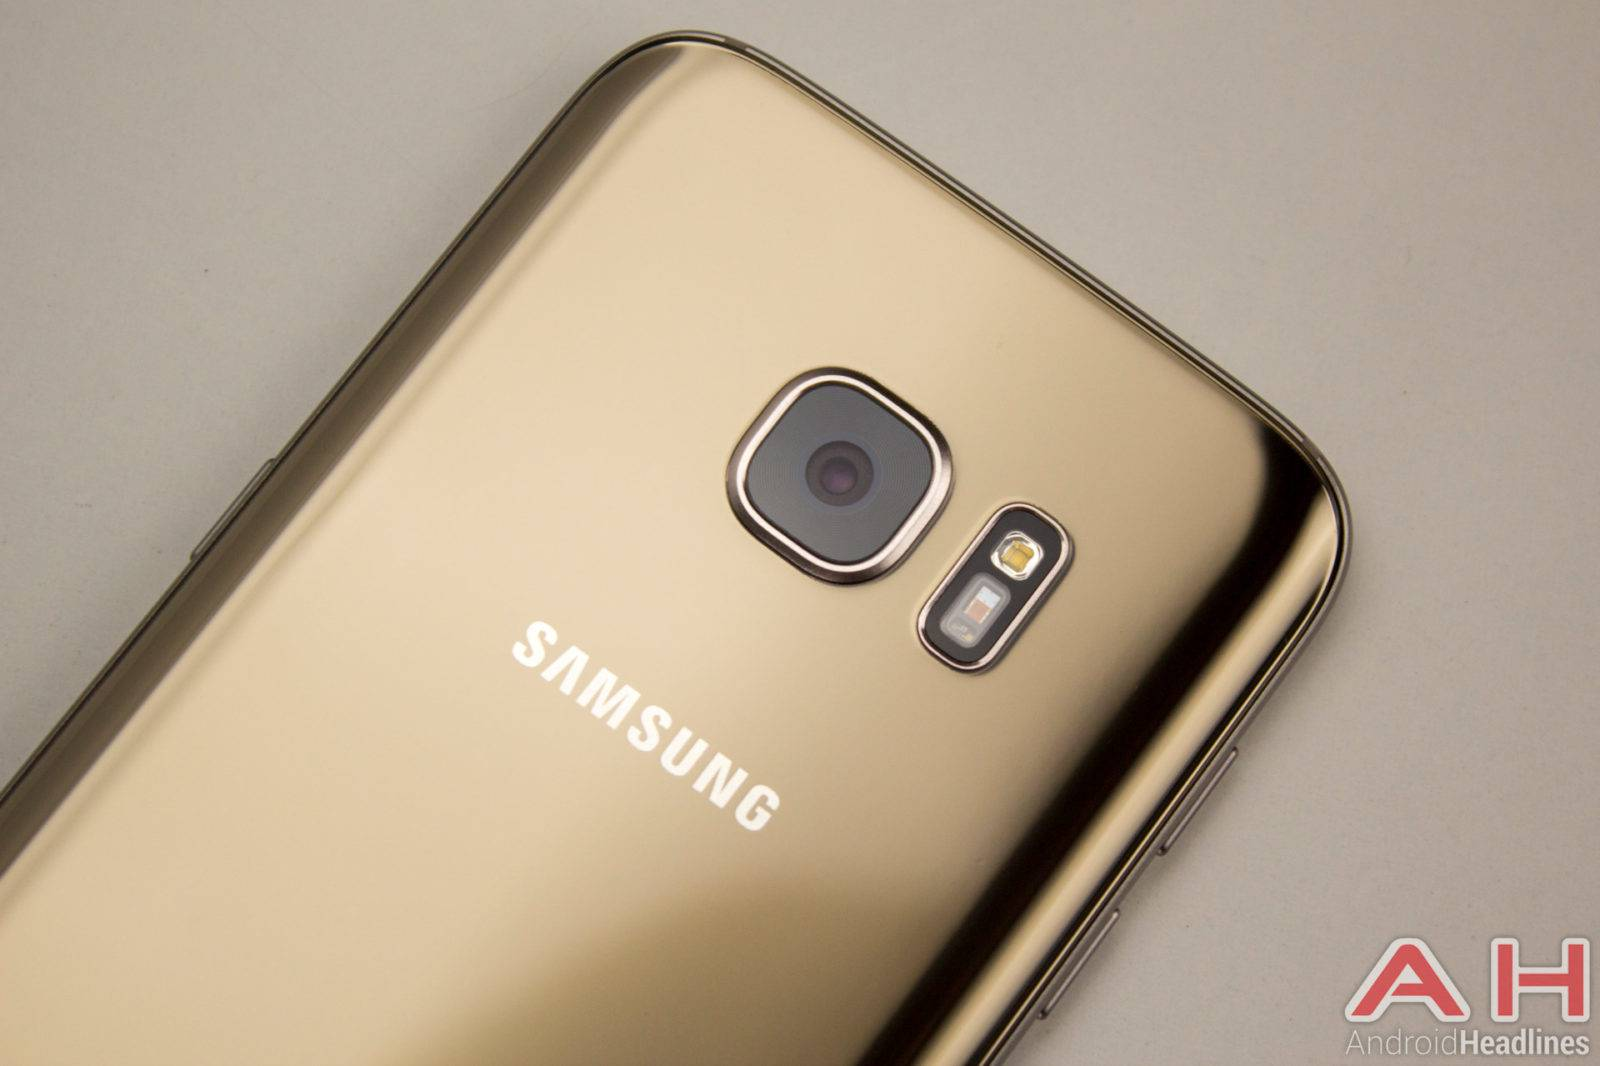 Samsung-Galaxy-S7-AH-NS-gold-logo-2